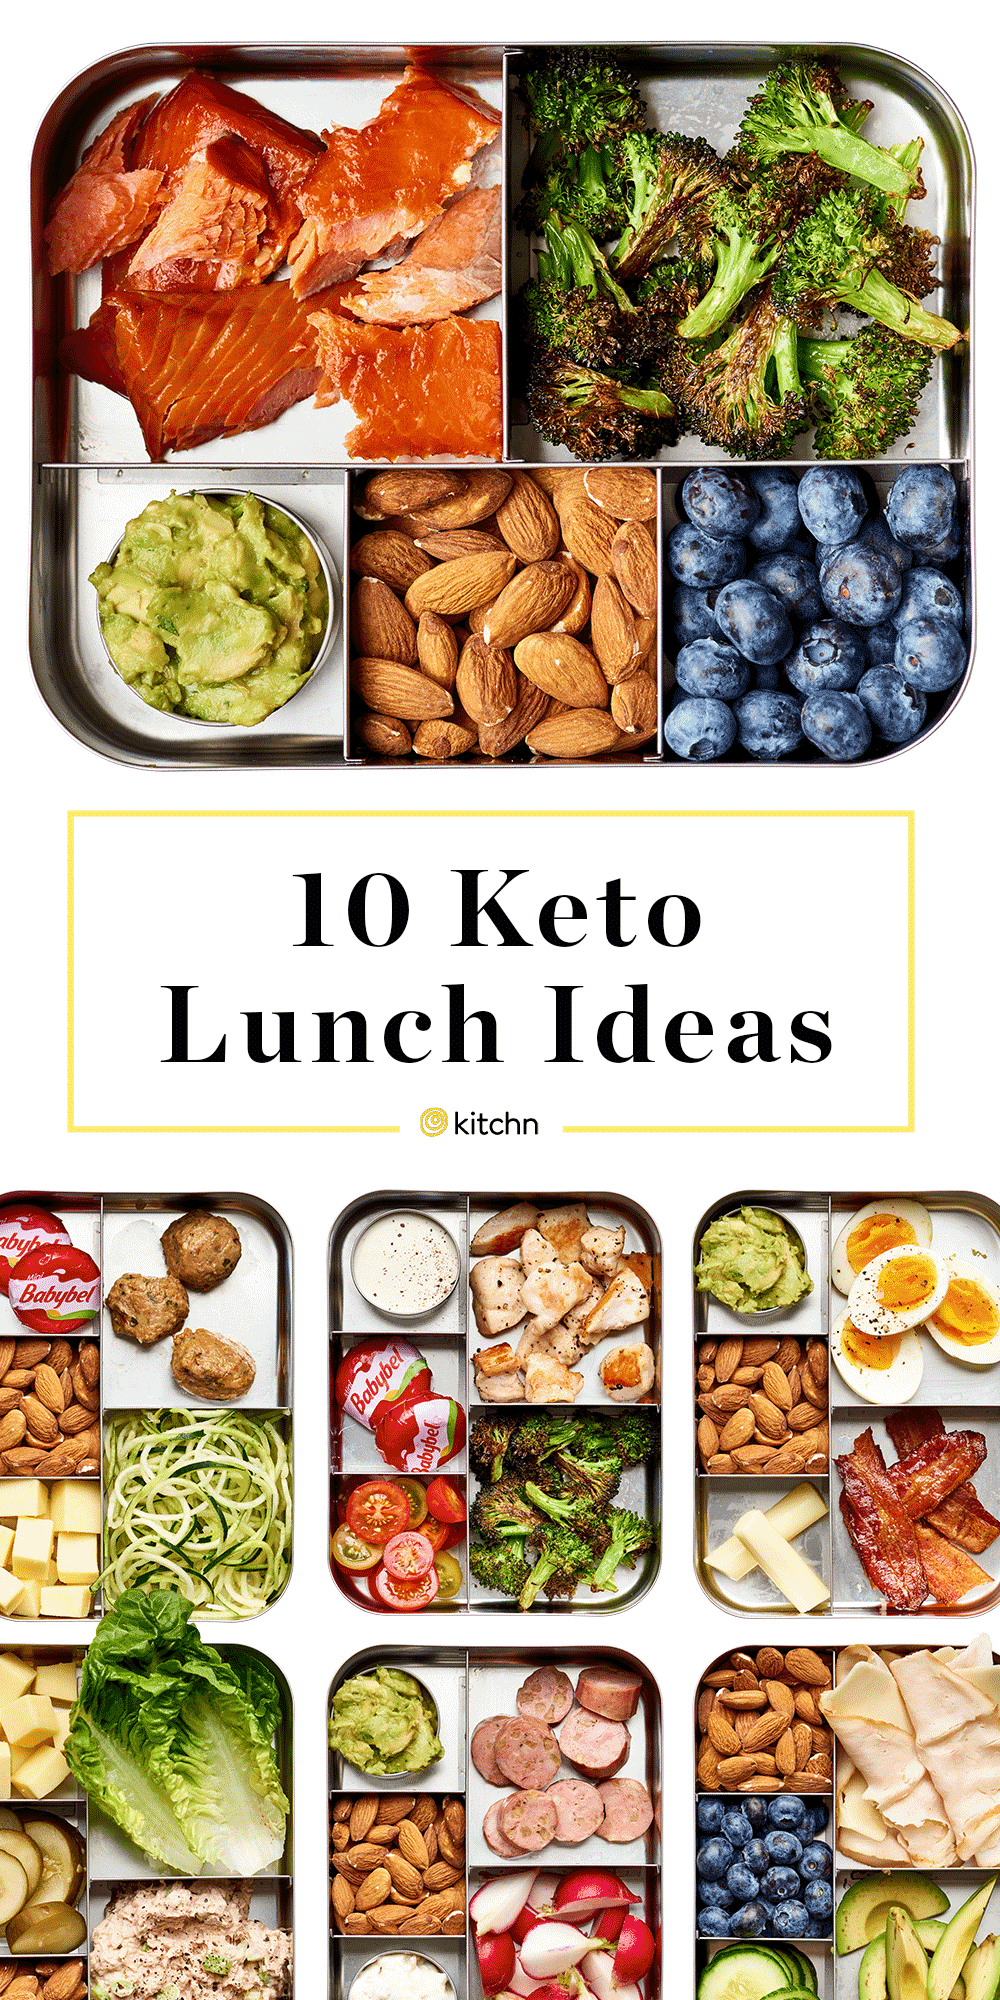 10 Easy Ways To Pack A Keto Friendly Lunch Keto Lunch Ideas Ketogenic Diet Meal Plan Keto Diet Recipes